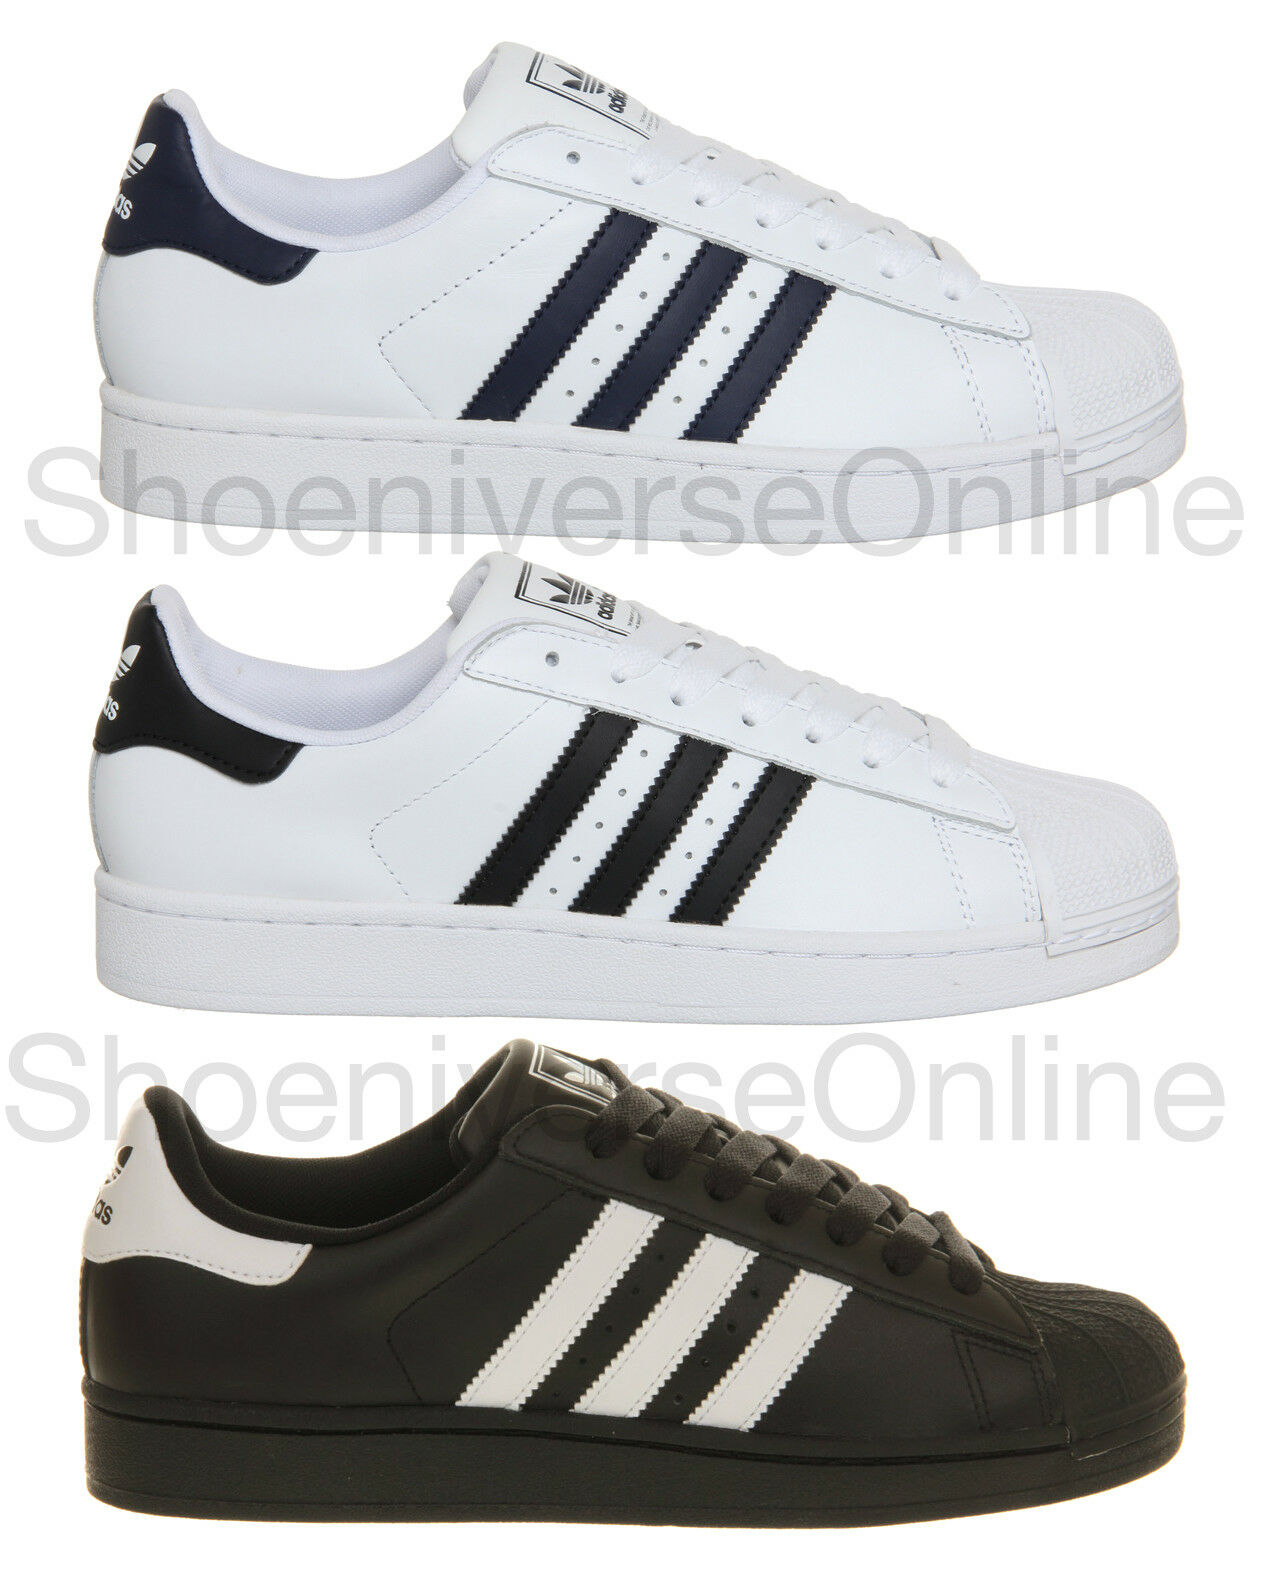 Men's Adidas Originals Superstar 2 Classic Retro Trainers White Black Navy